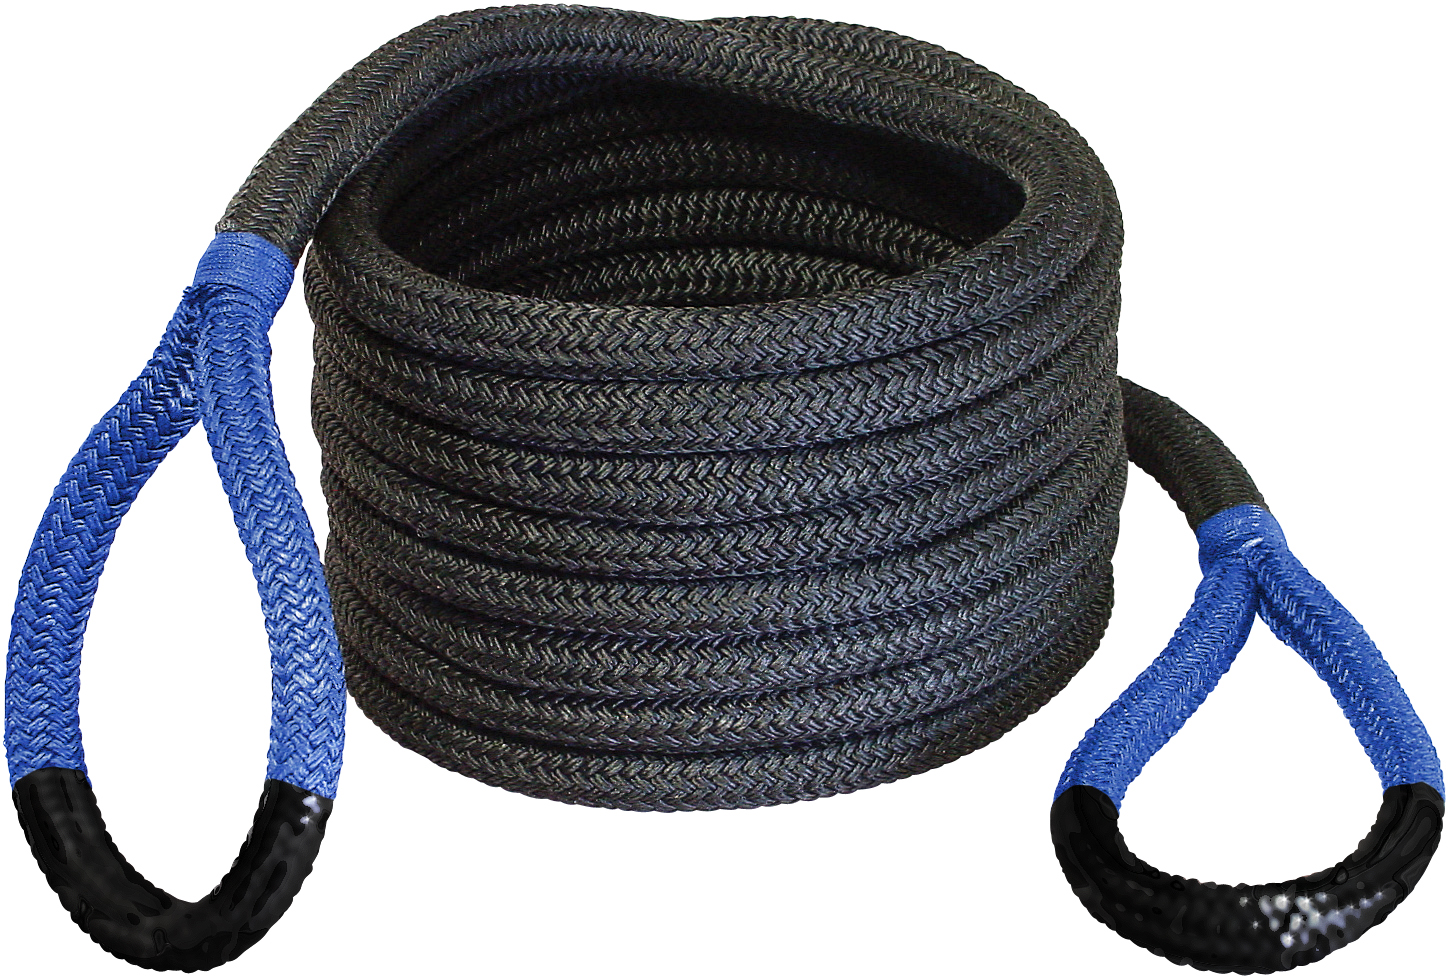 176660BLG Bubba Rope Recovery Strap 7/8 Inch Round X 20 Foot Long